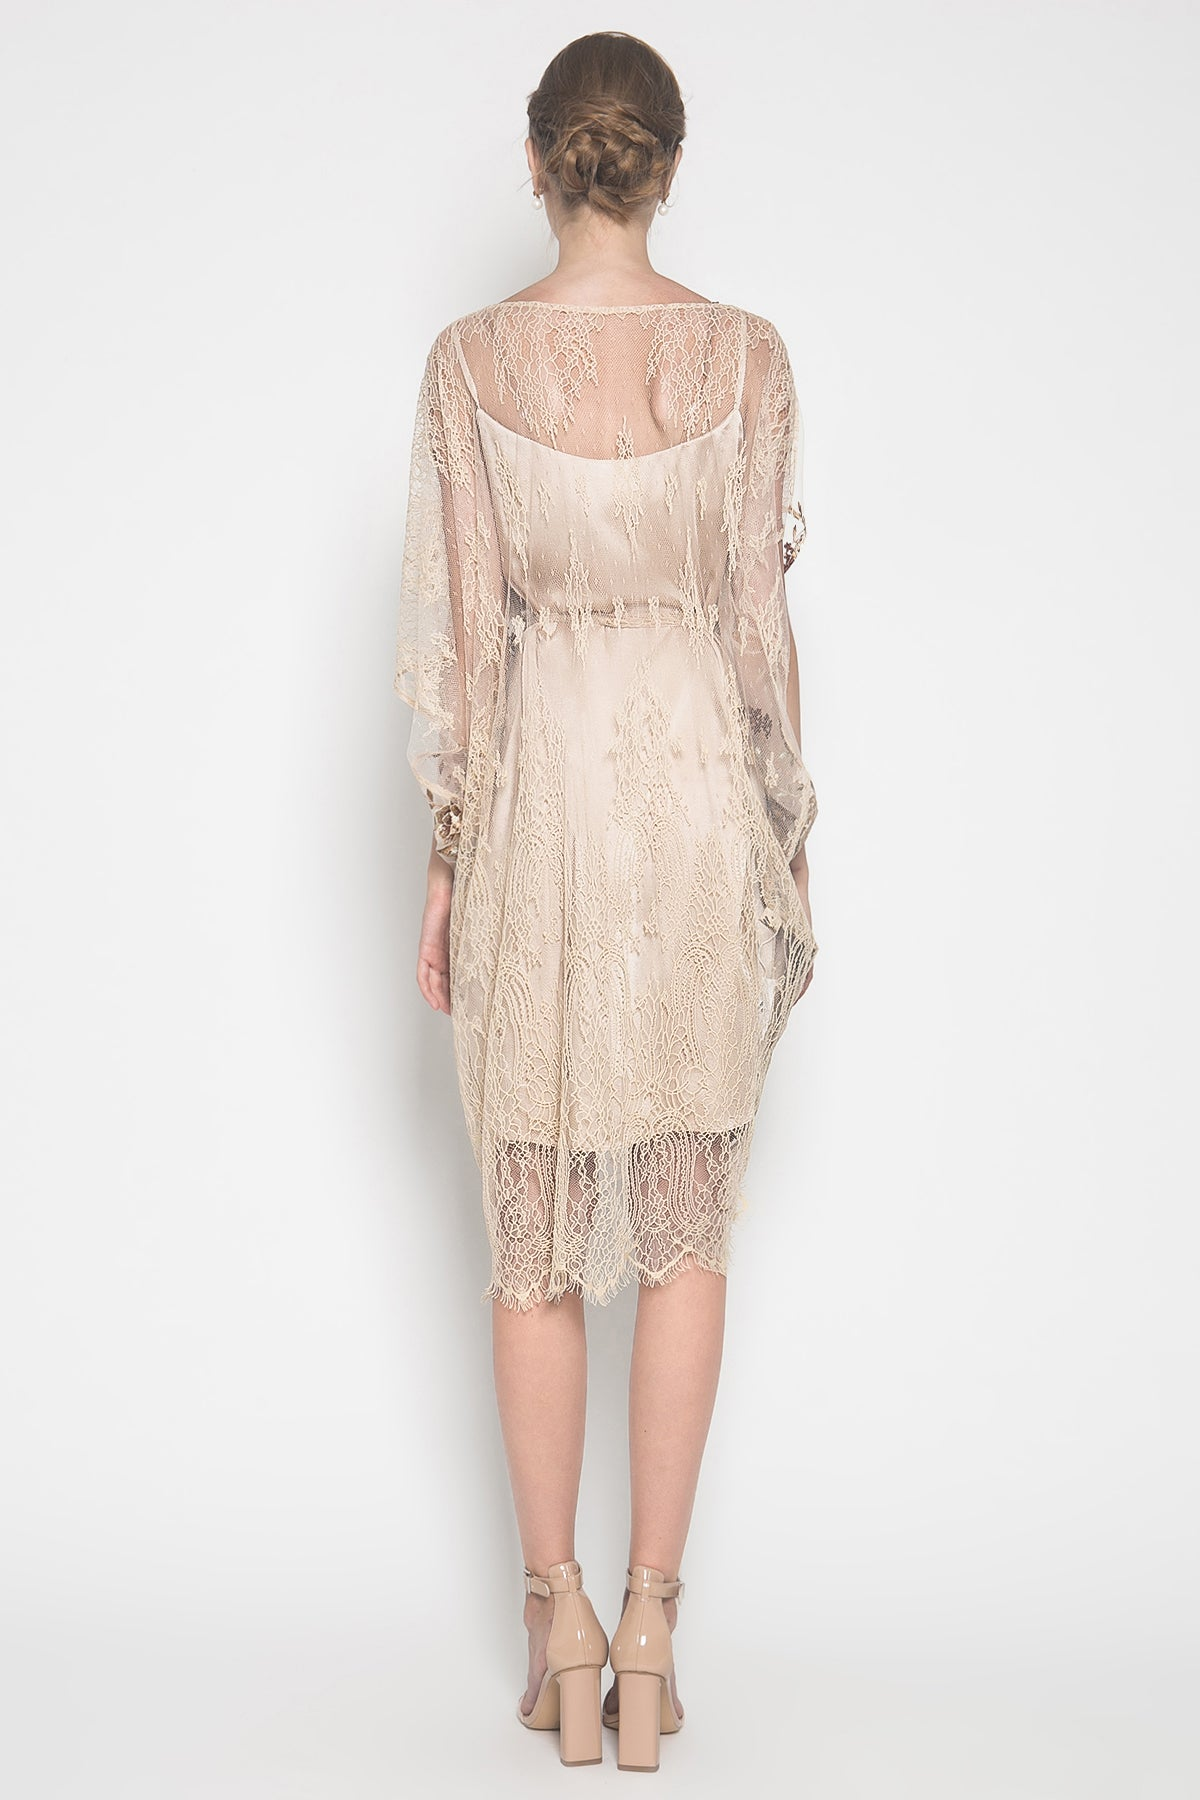 Sara Sabrina Dress in Beige